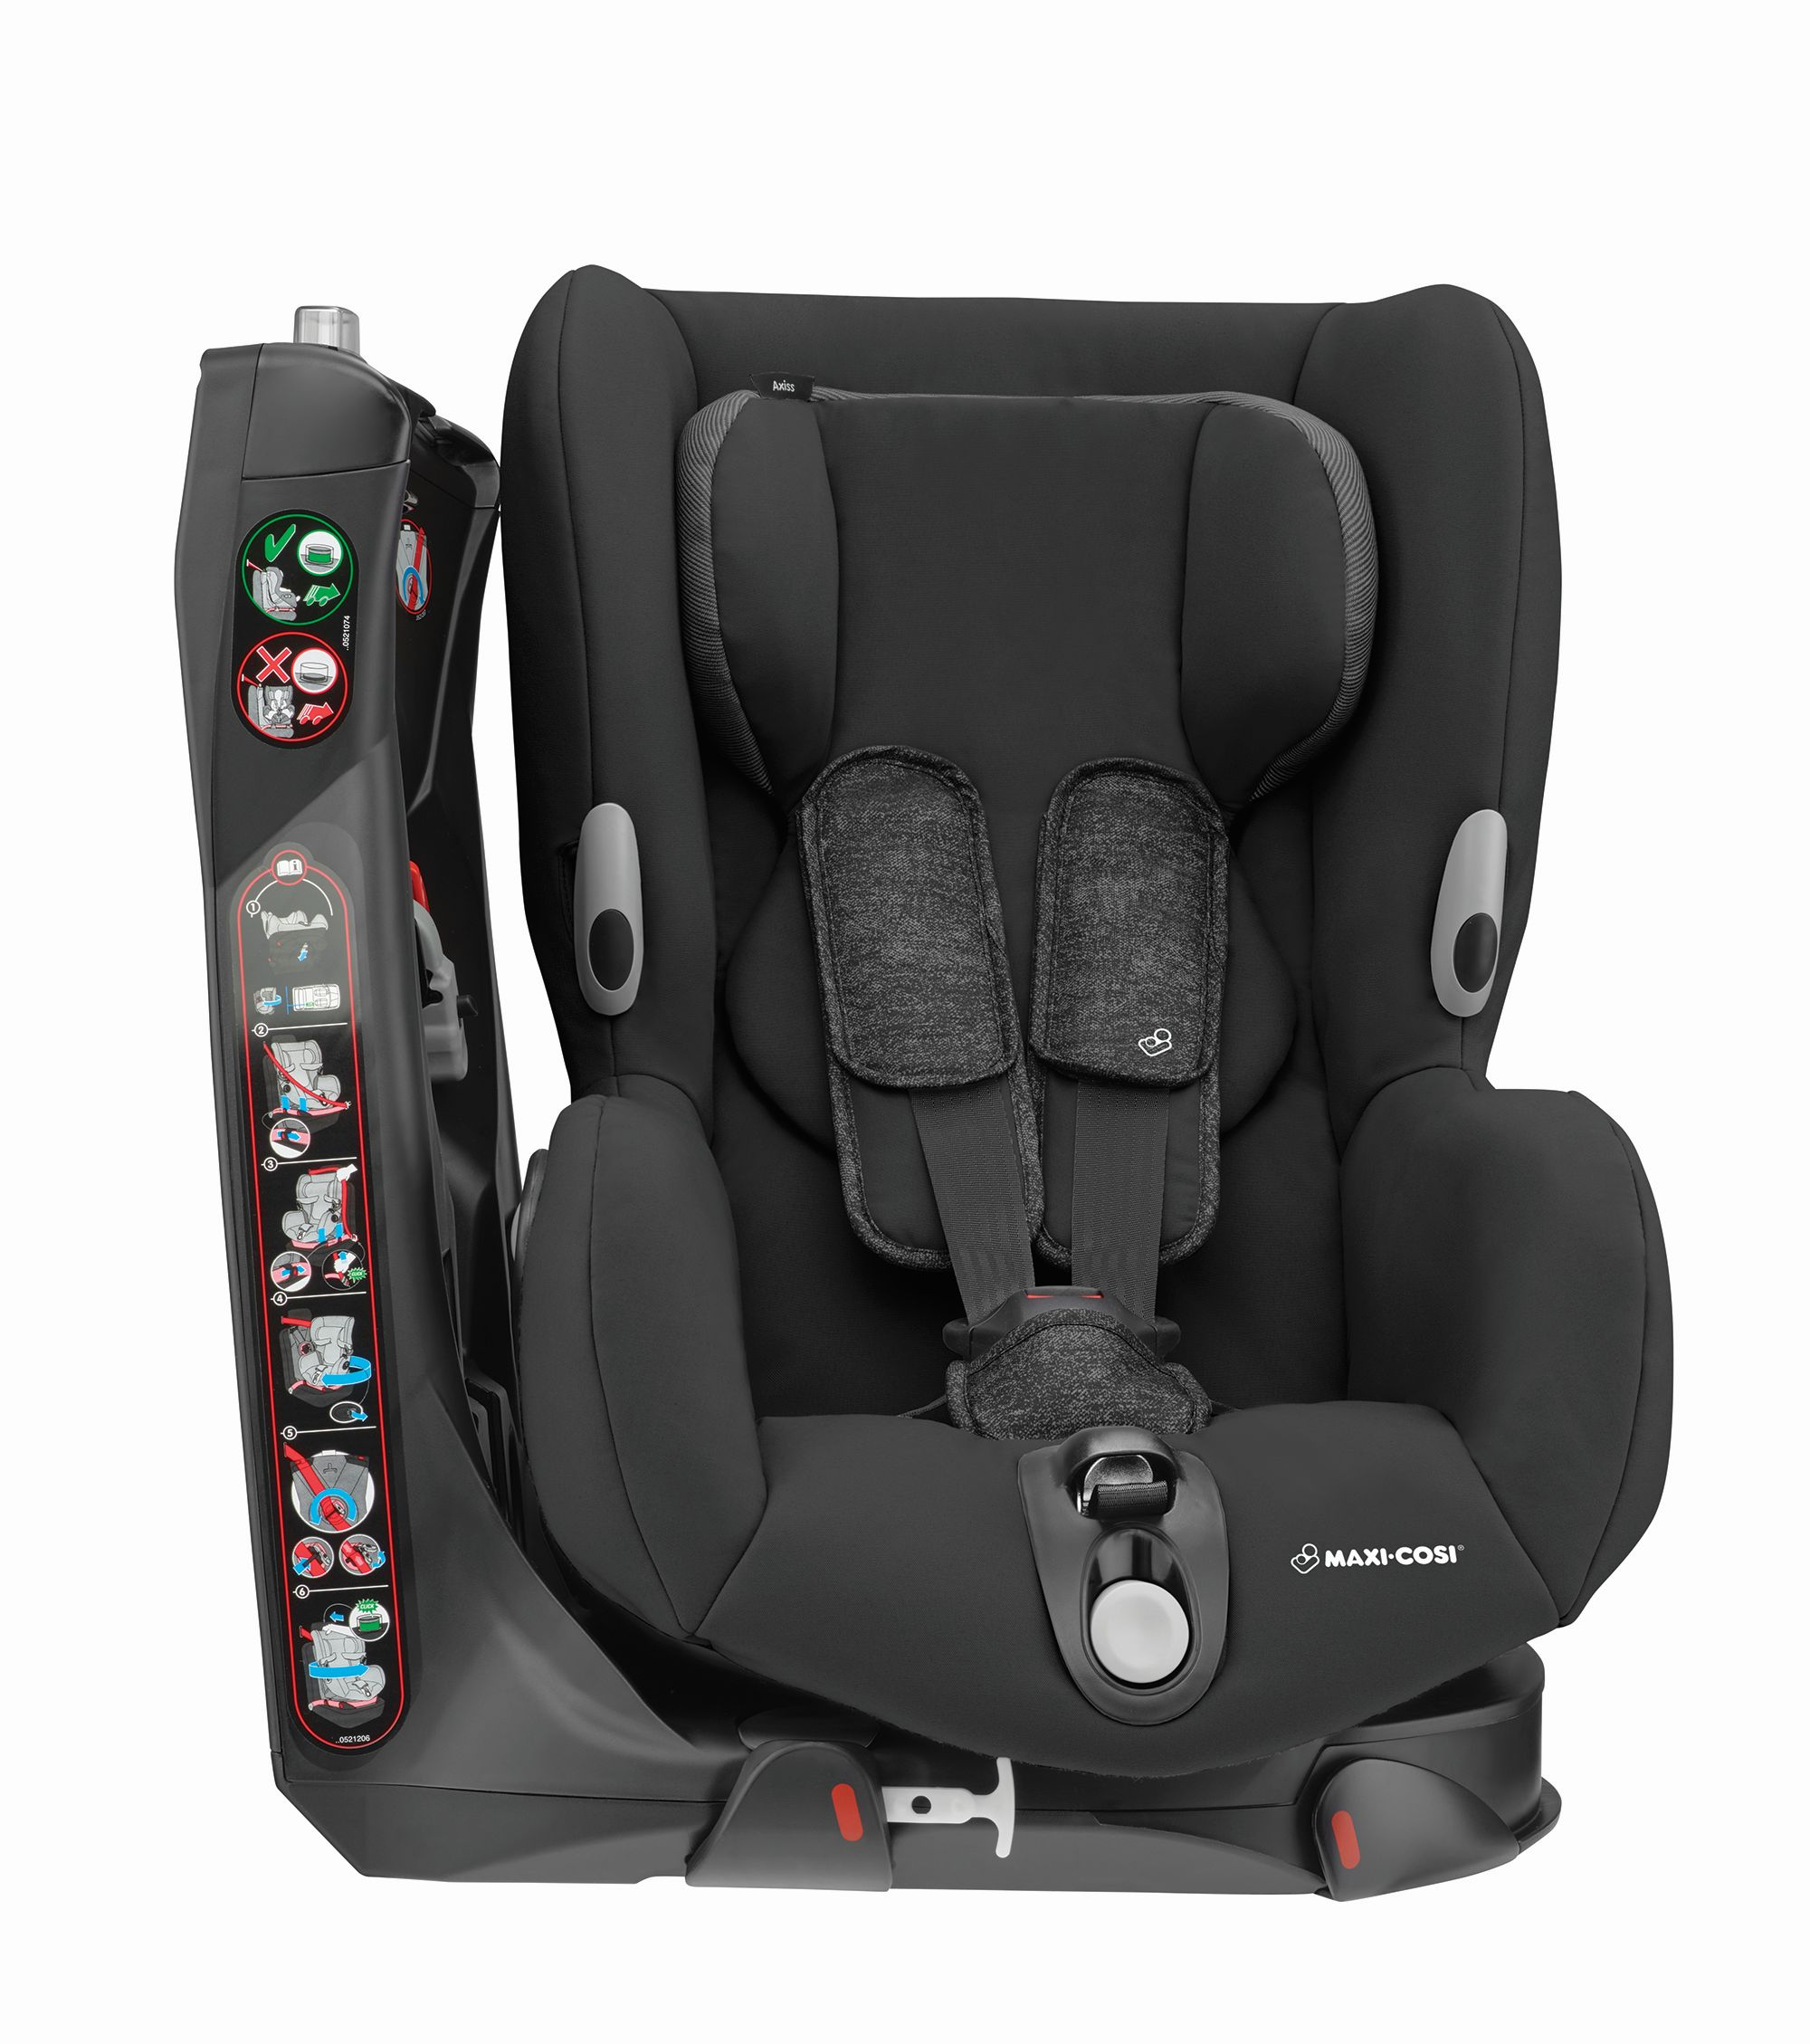 maxi cosi child car seat axiss 2018 nomad black buy at kidsroom car seats. Black Bedroom Furniture Sets. Home Design Ideas